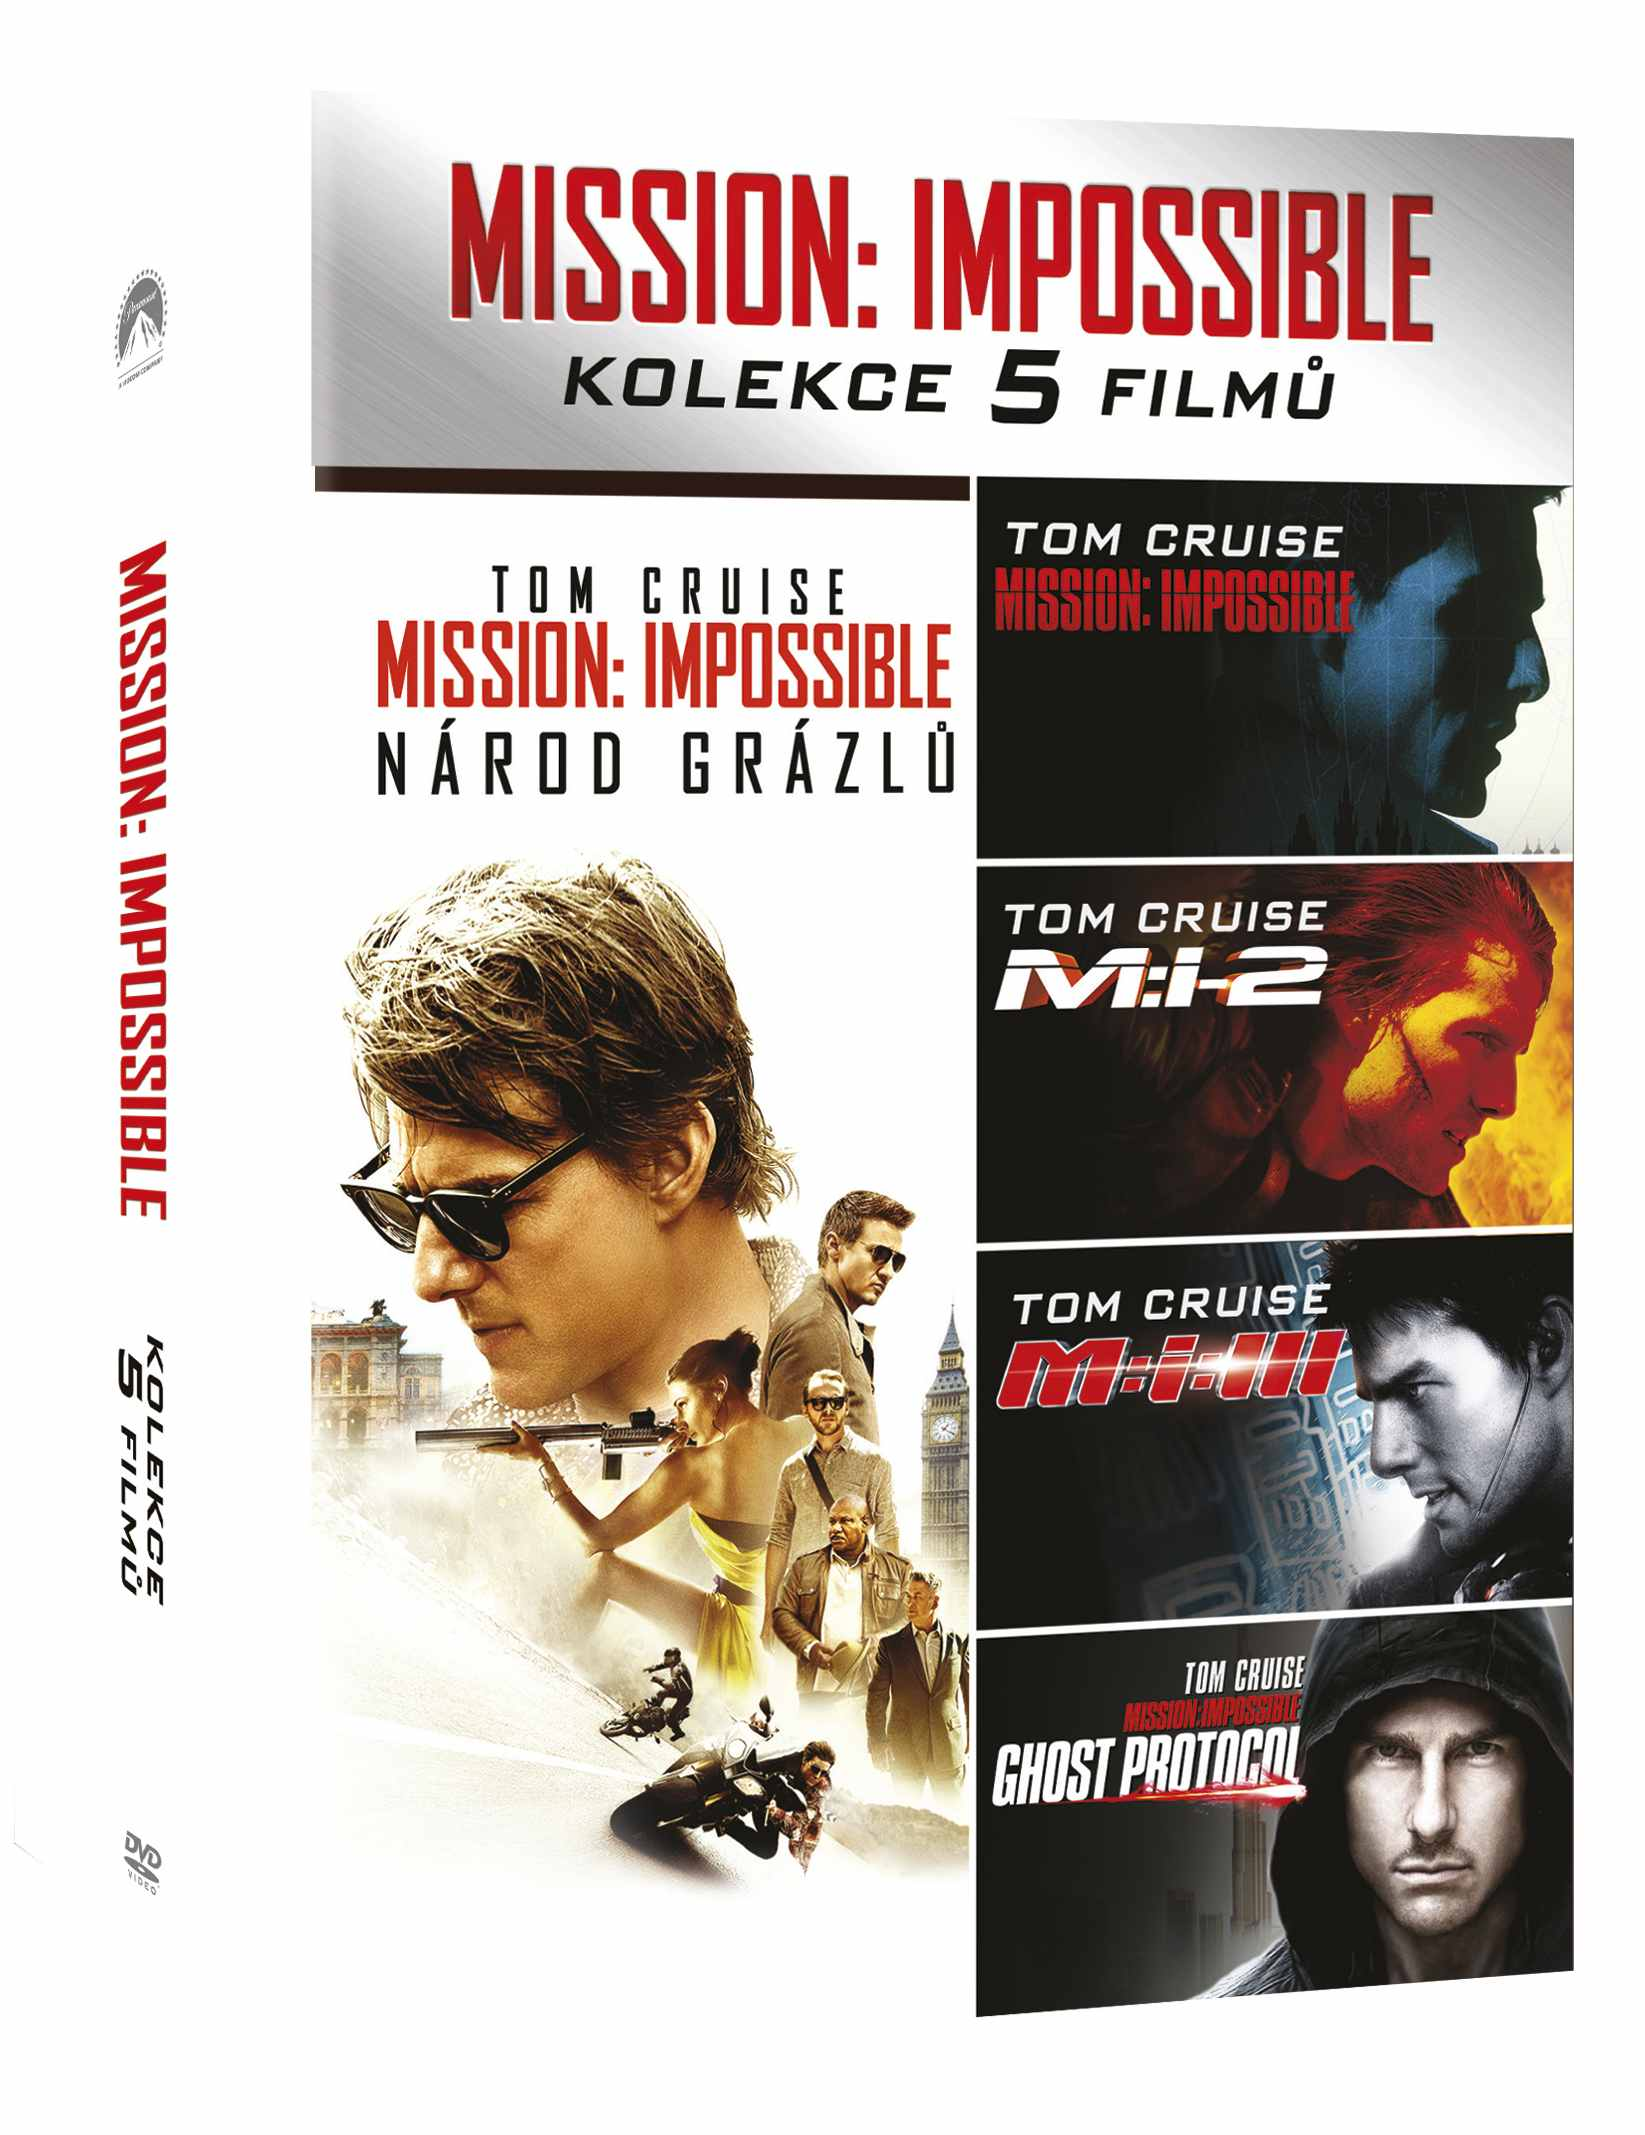 MISSION: IMPOSSIBLE 1-5 KOLEKCE - 5 DVD